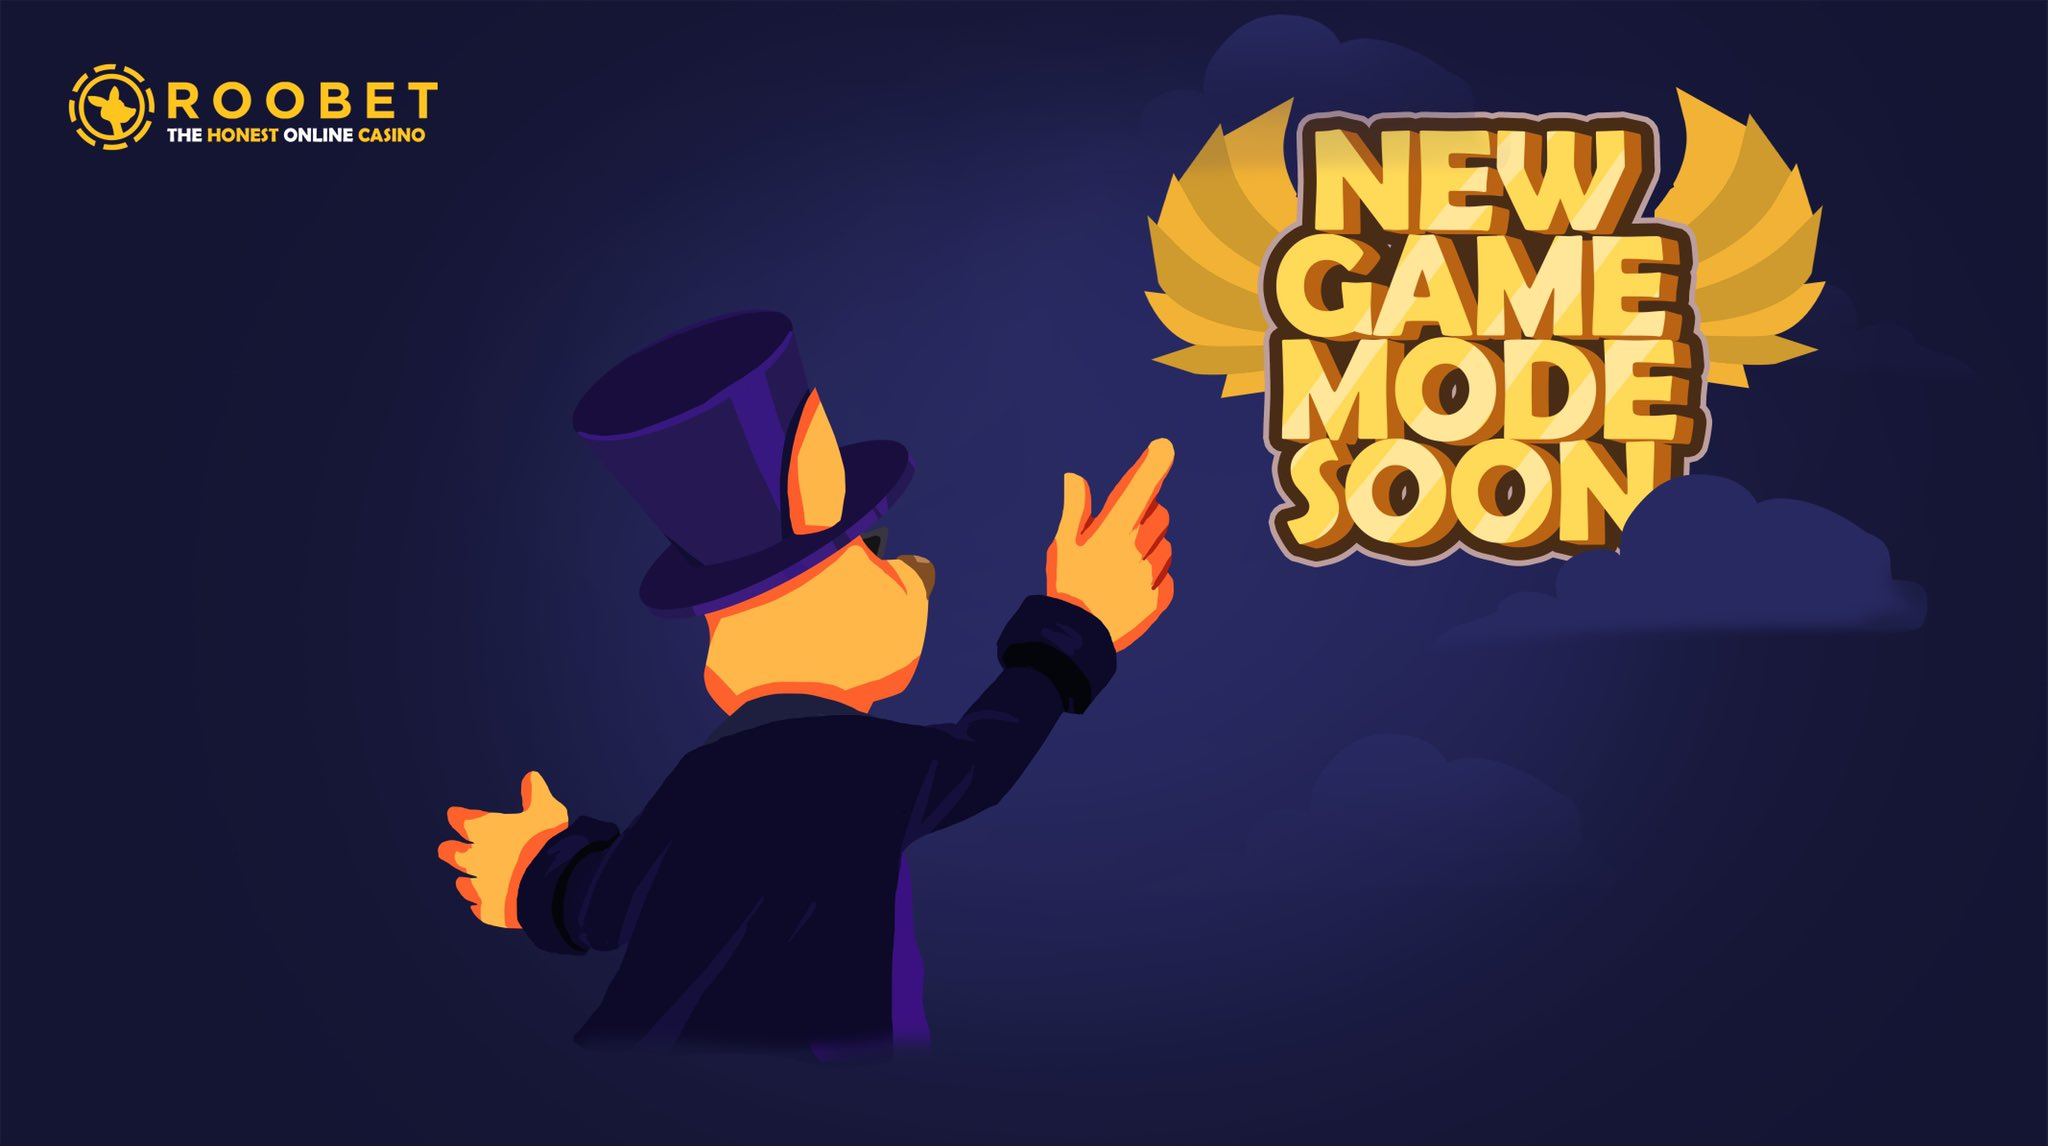 "Roobet on Twitter: ""Our New Game Mode is coming soon! What do you think it is? 🤔 Reply with your guesses👇… """